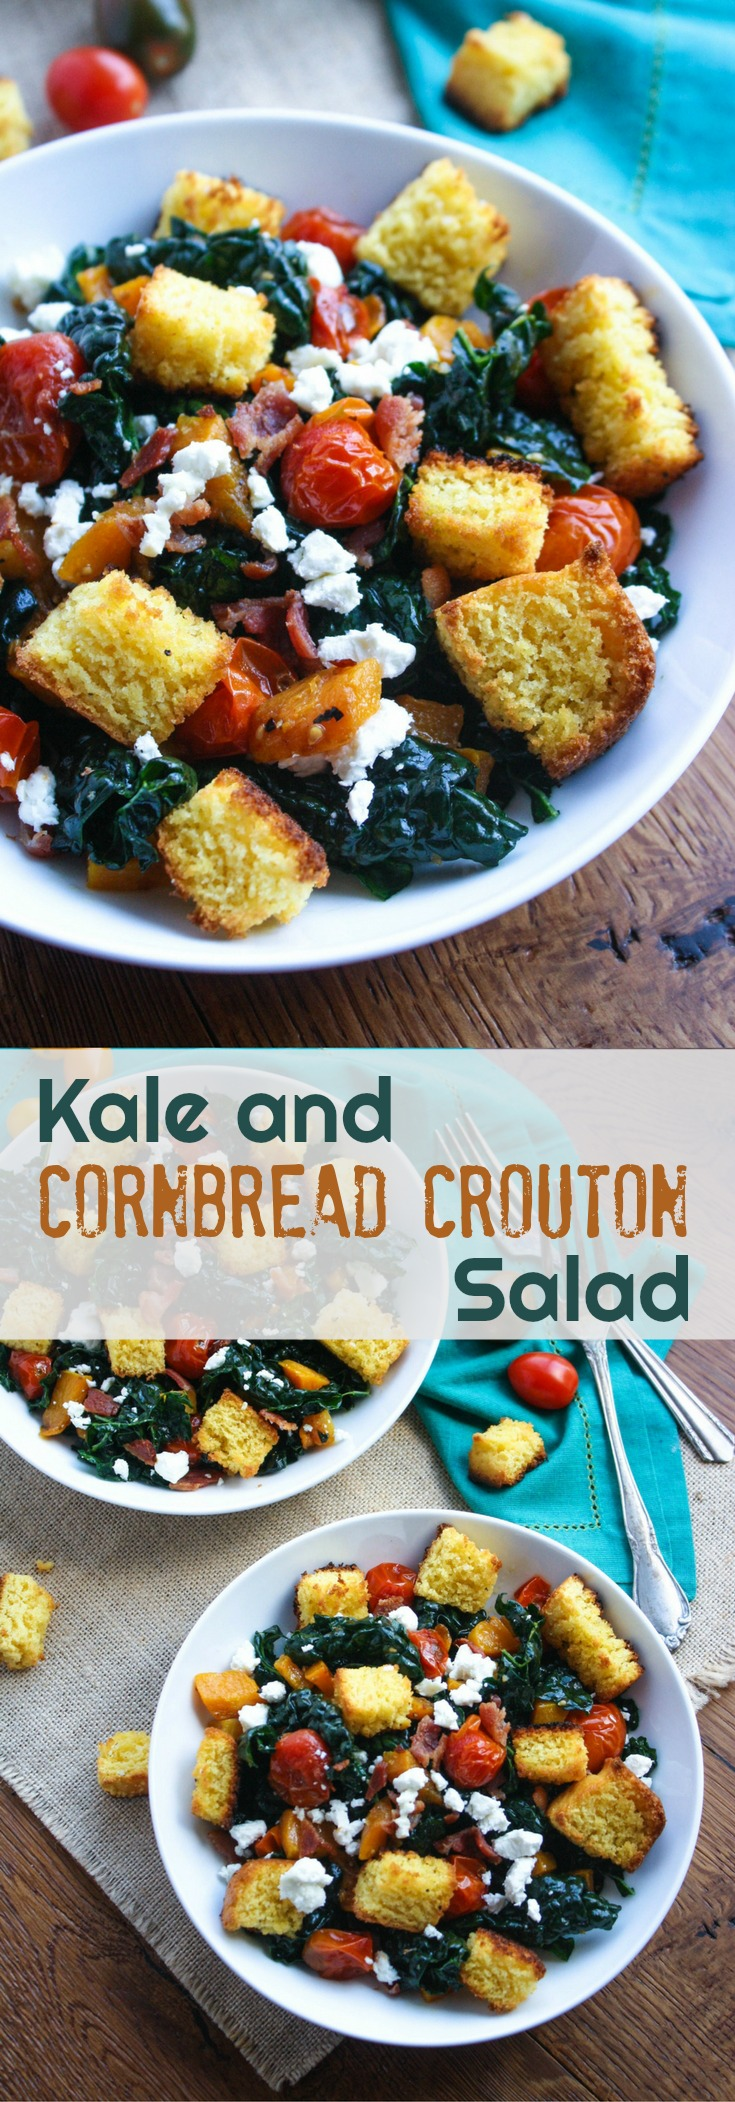 Kale and Cornbread Crouton Salad is welcome, especially after your indulgent Thanksgiving meal! You'll love the cornbread croutons in this salad!